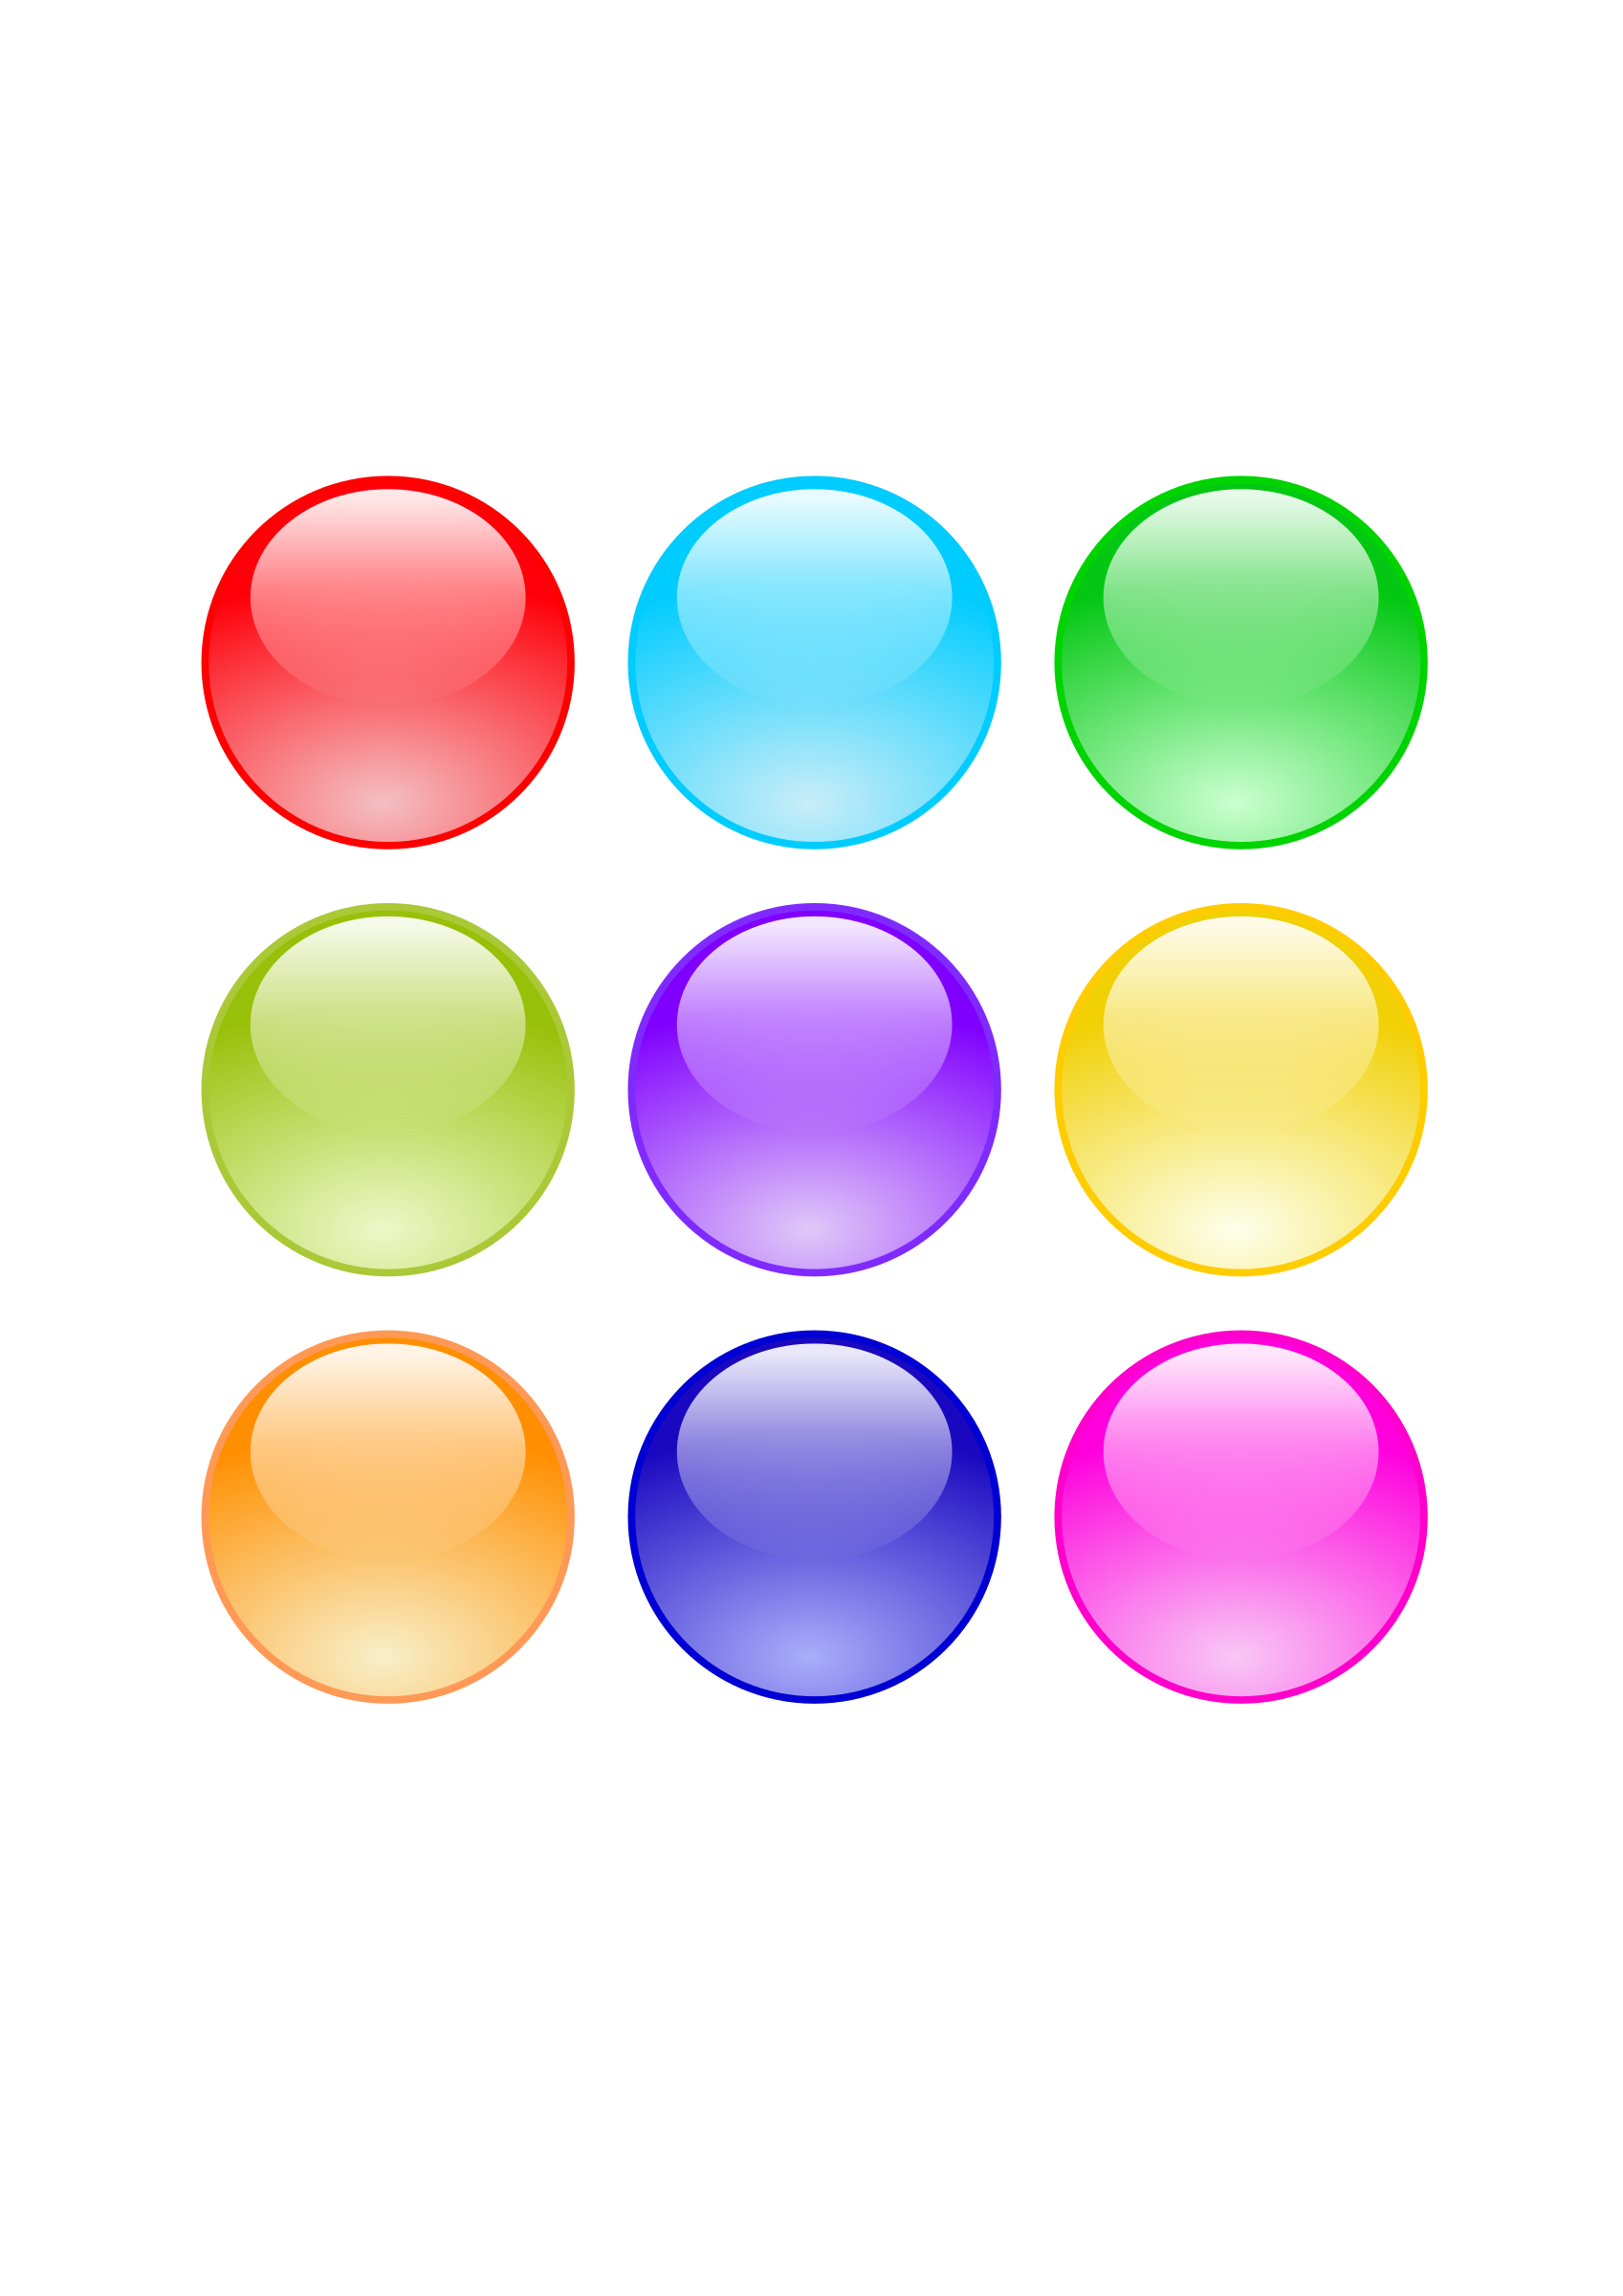 Glossy Circle Buttons by pauliuw